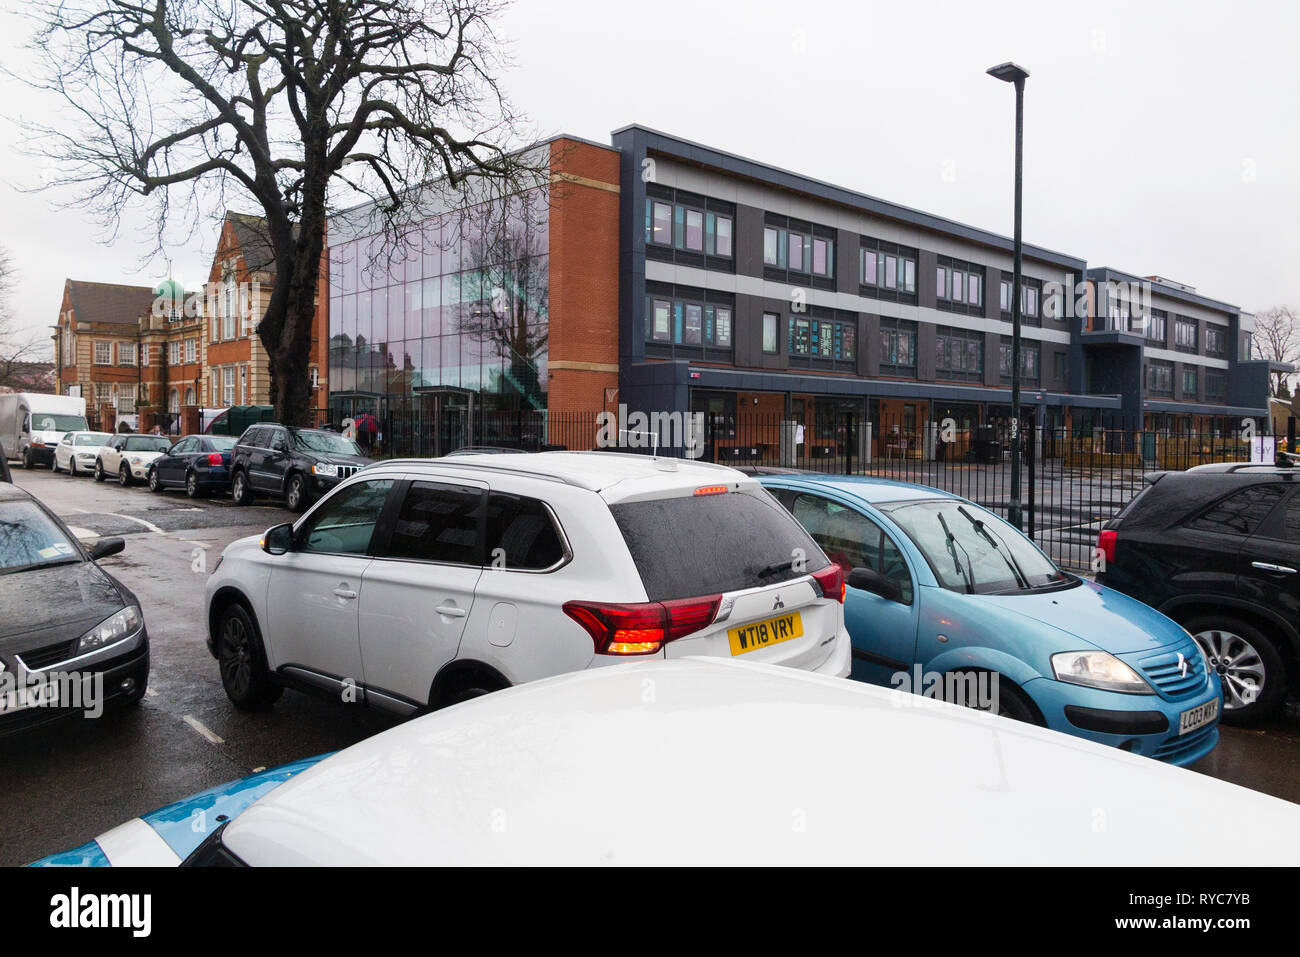 Cars parked dangerously / badly / illegally / double parking / double parked with hazard lights flashing during the school run drop off / collection UK - Stock Image